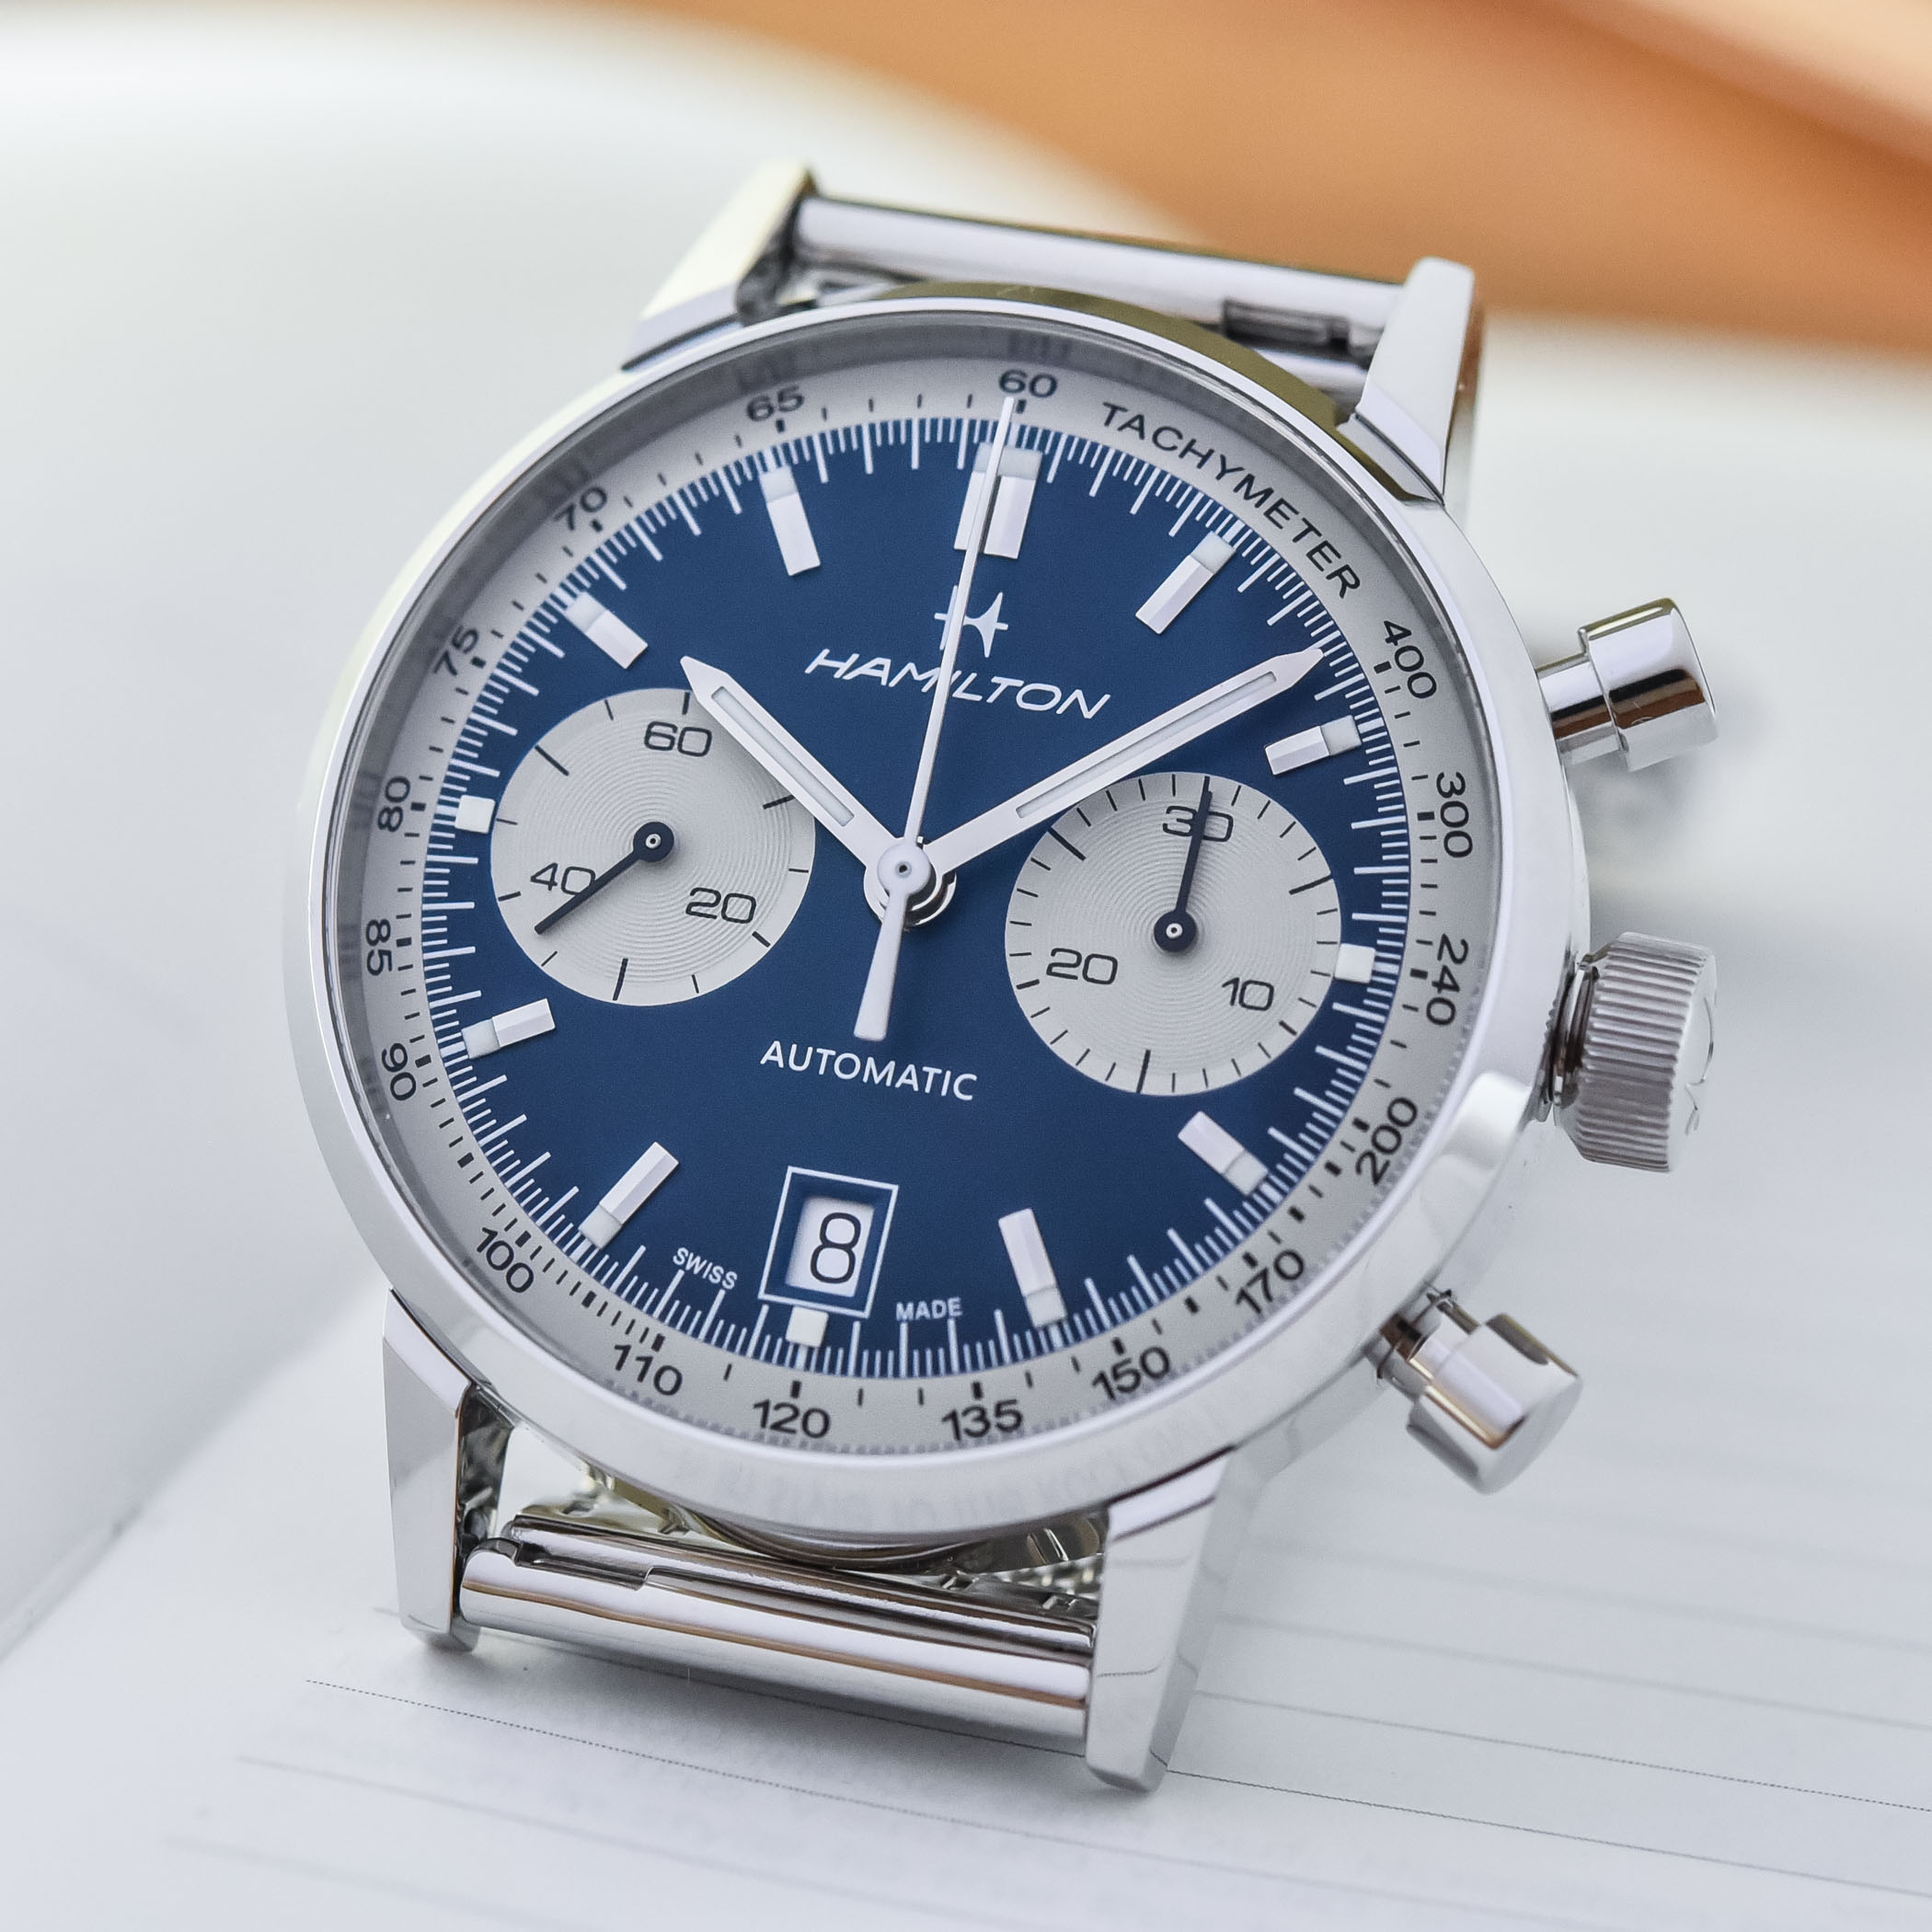 Hamilton Intra-Matic Automatic Chronograph 40mm 2021 collection - H38416111 - H38416141 - 6